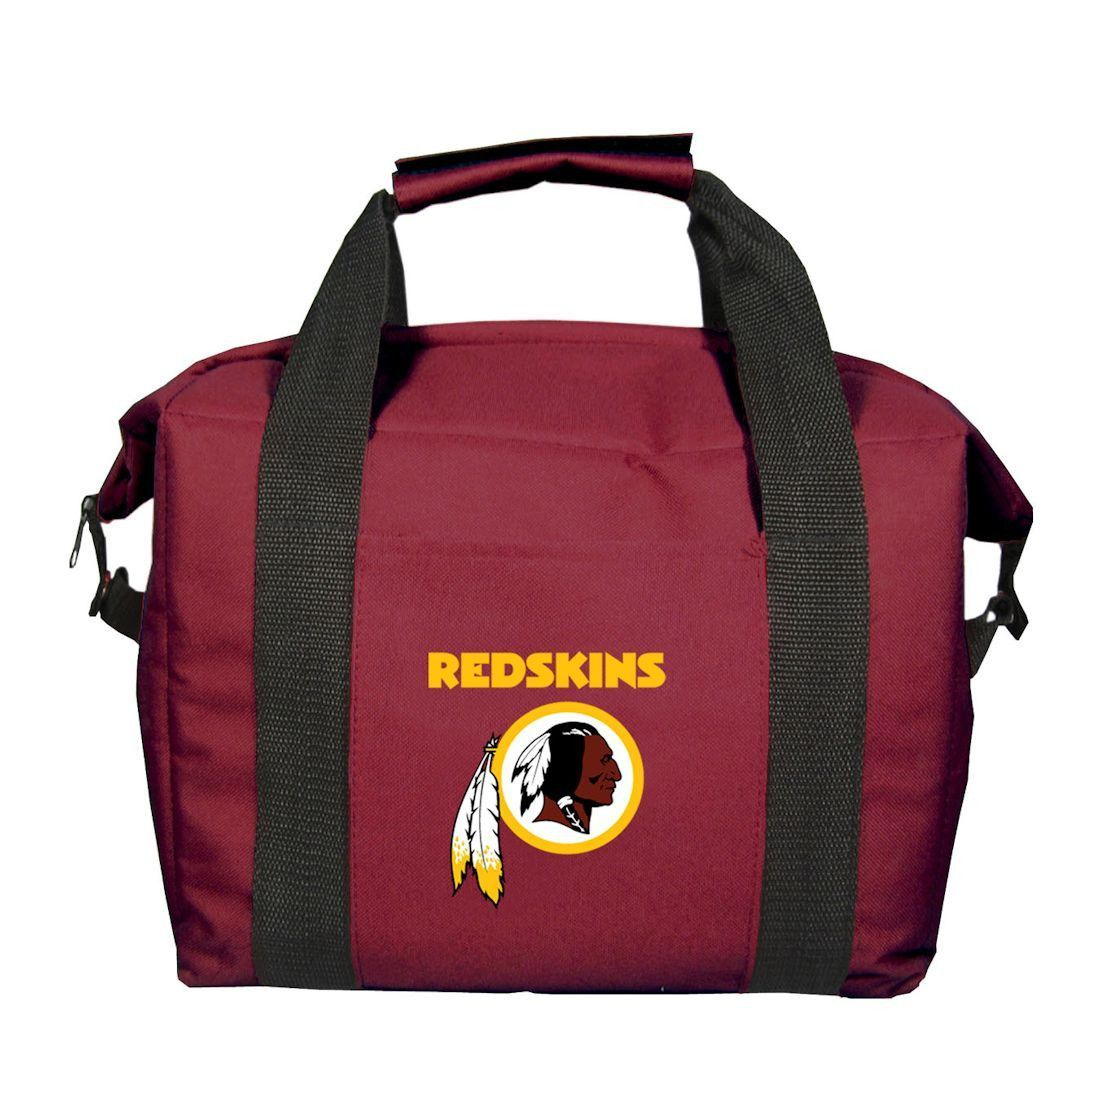 Game cooler bags - Washington Redskins 12 Pack Kolder Cooler Bag